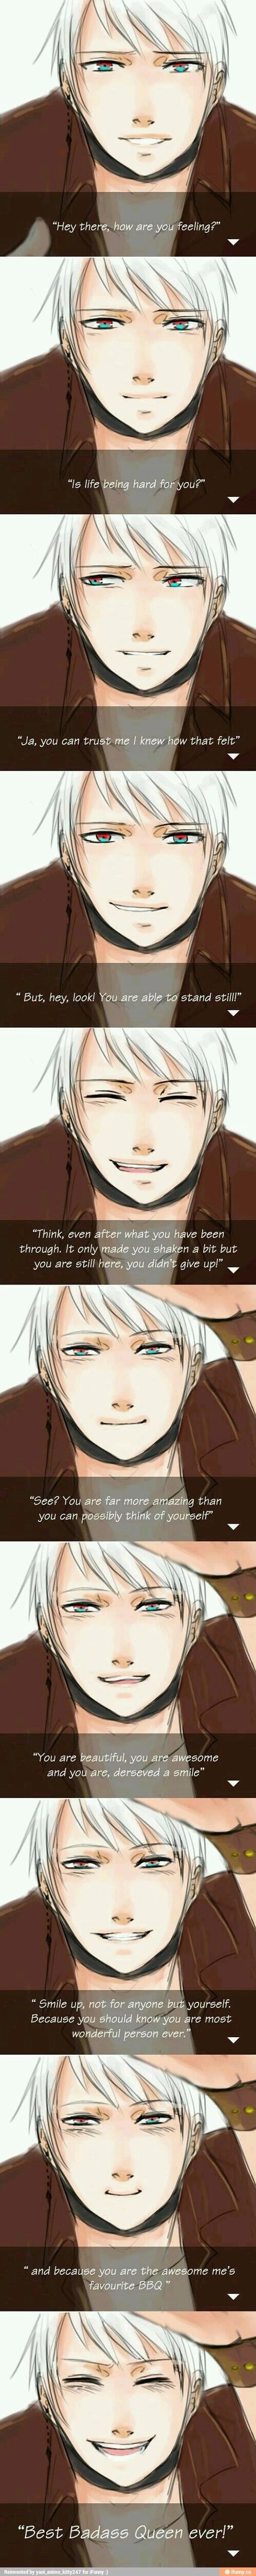 Prussia, making  girls feel better about themselves. I want to cry.